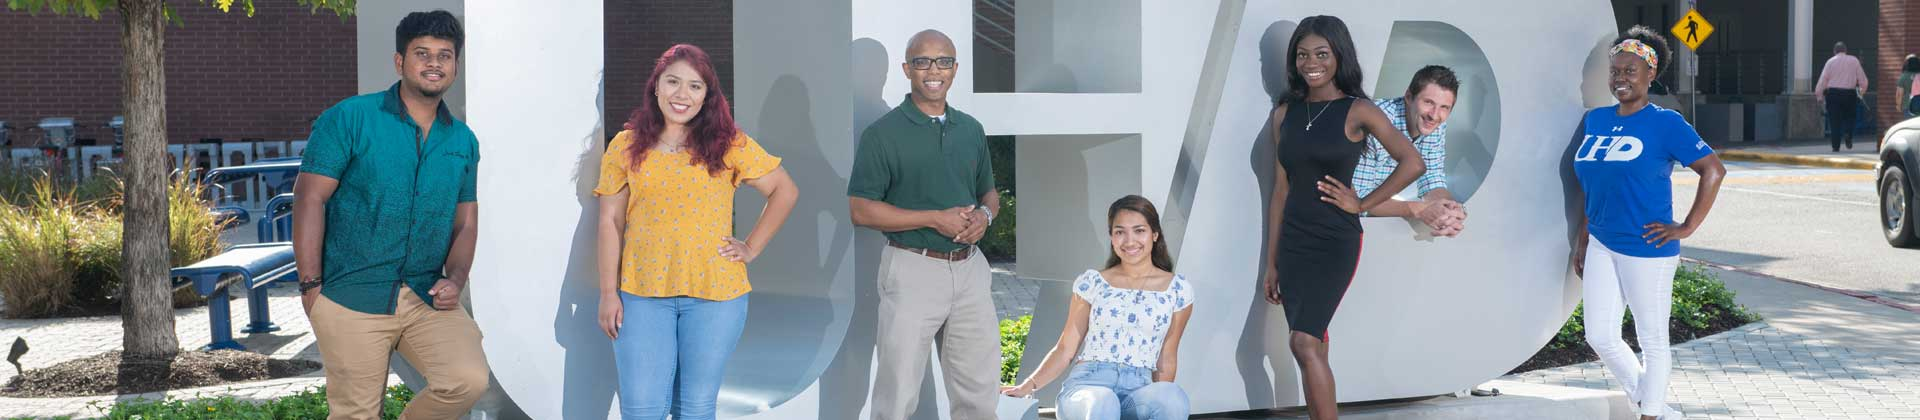 Students posing by 3 dimensional UHD sign